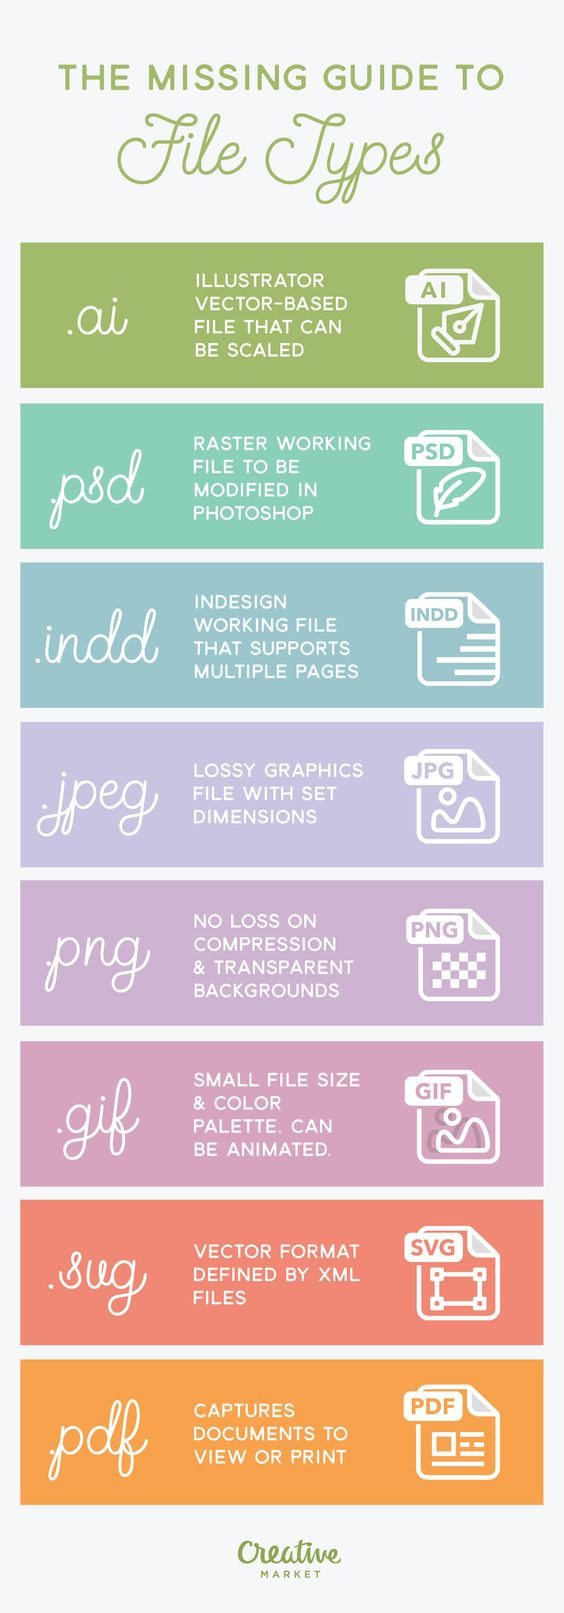 6 Steps to Proof-Check Your Infographic Design